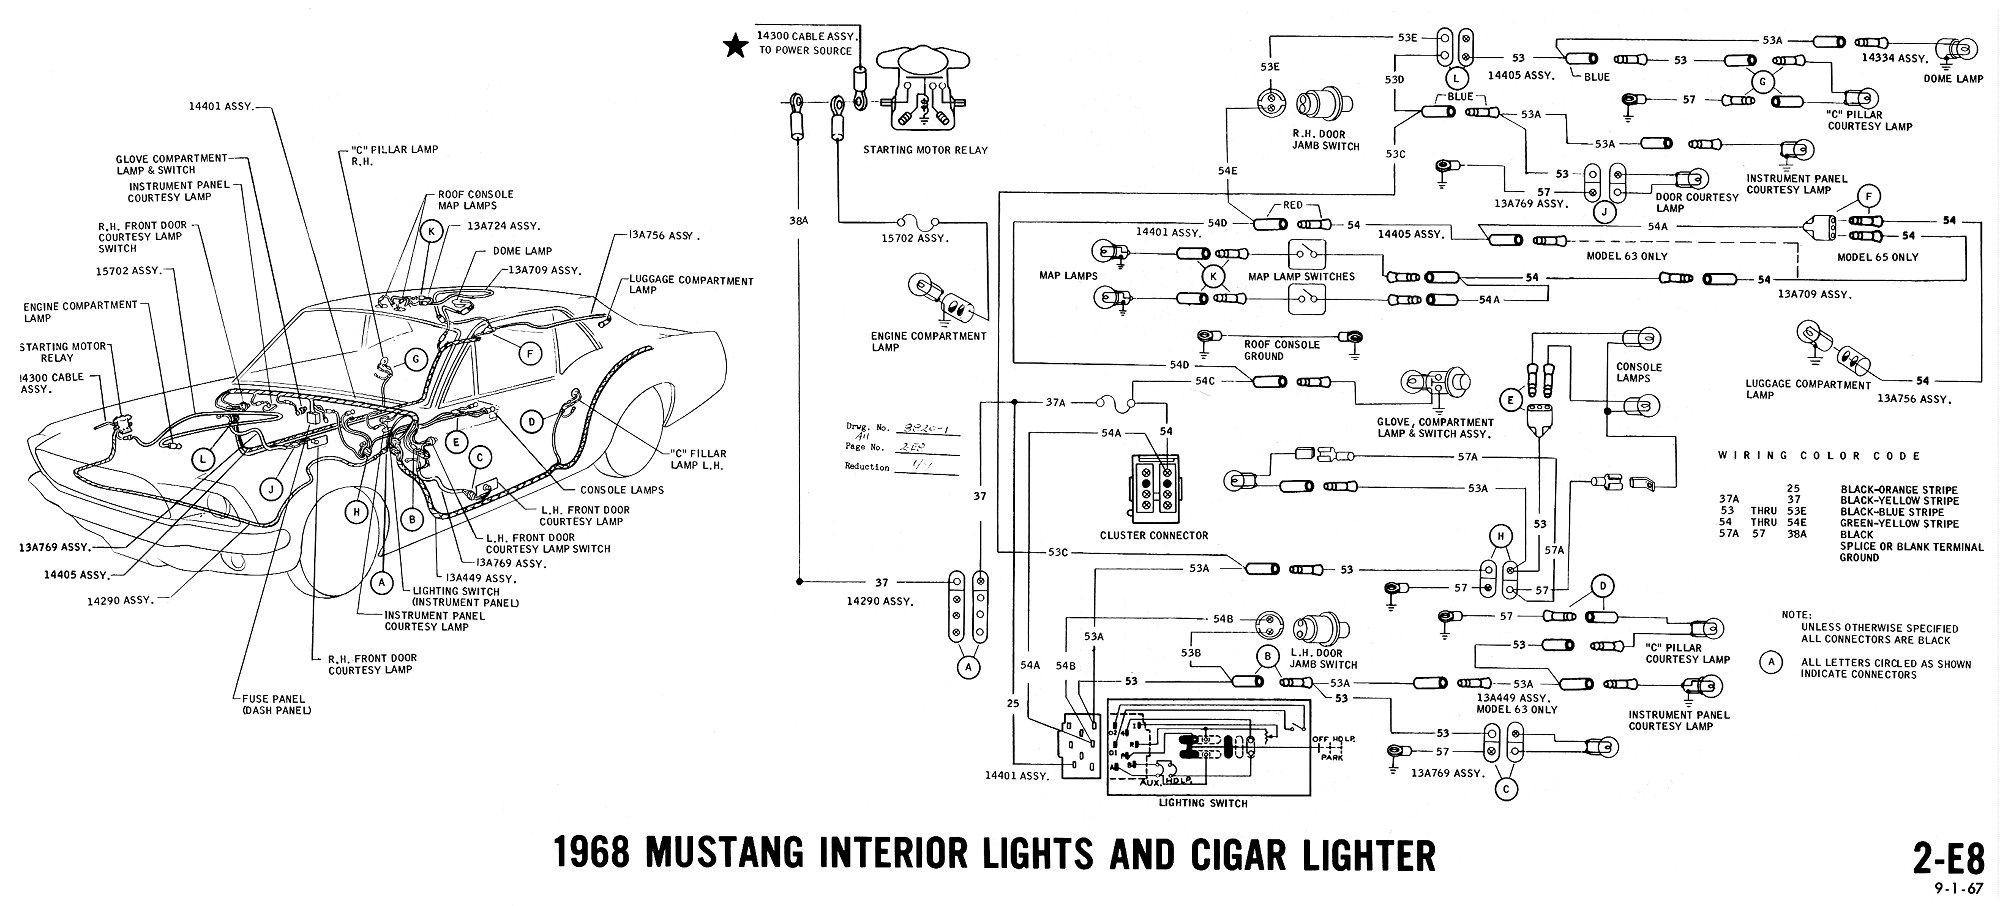 E8 66 mustang wiring diagram radio tape 66 mustang fuse diagram 1970 mustang wire harness at virtualis.co